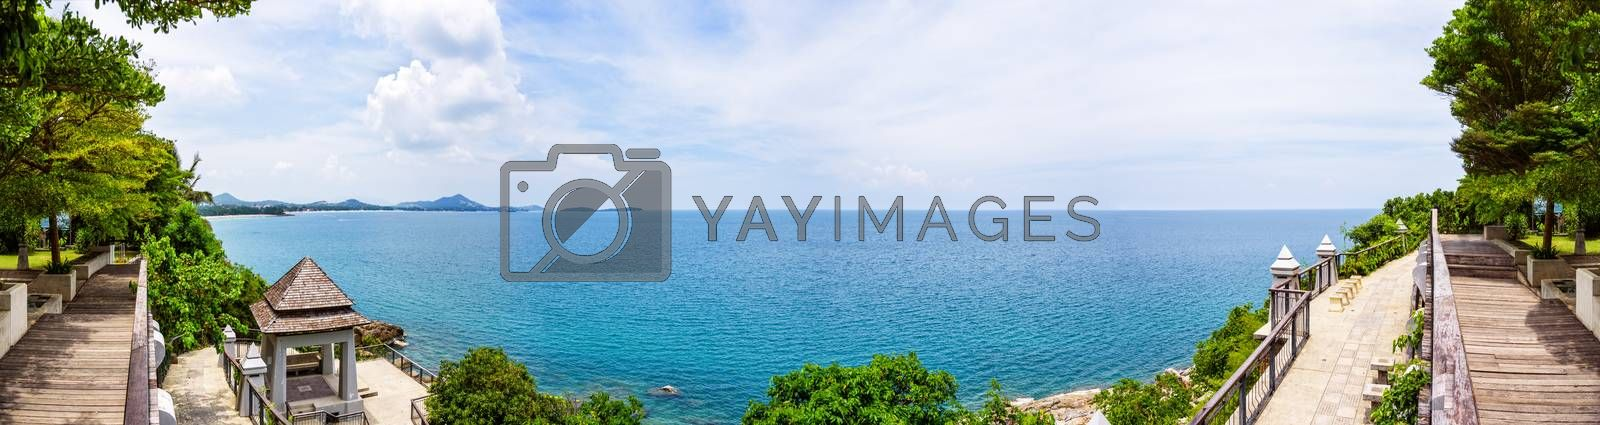 Lad Koh View Point, High angle view panorama beautiful nature landscape of rocks on the coastline with blue sea under the summer sky at Koh Samui island, Surat Thani, Thailand